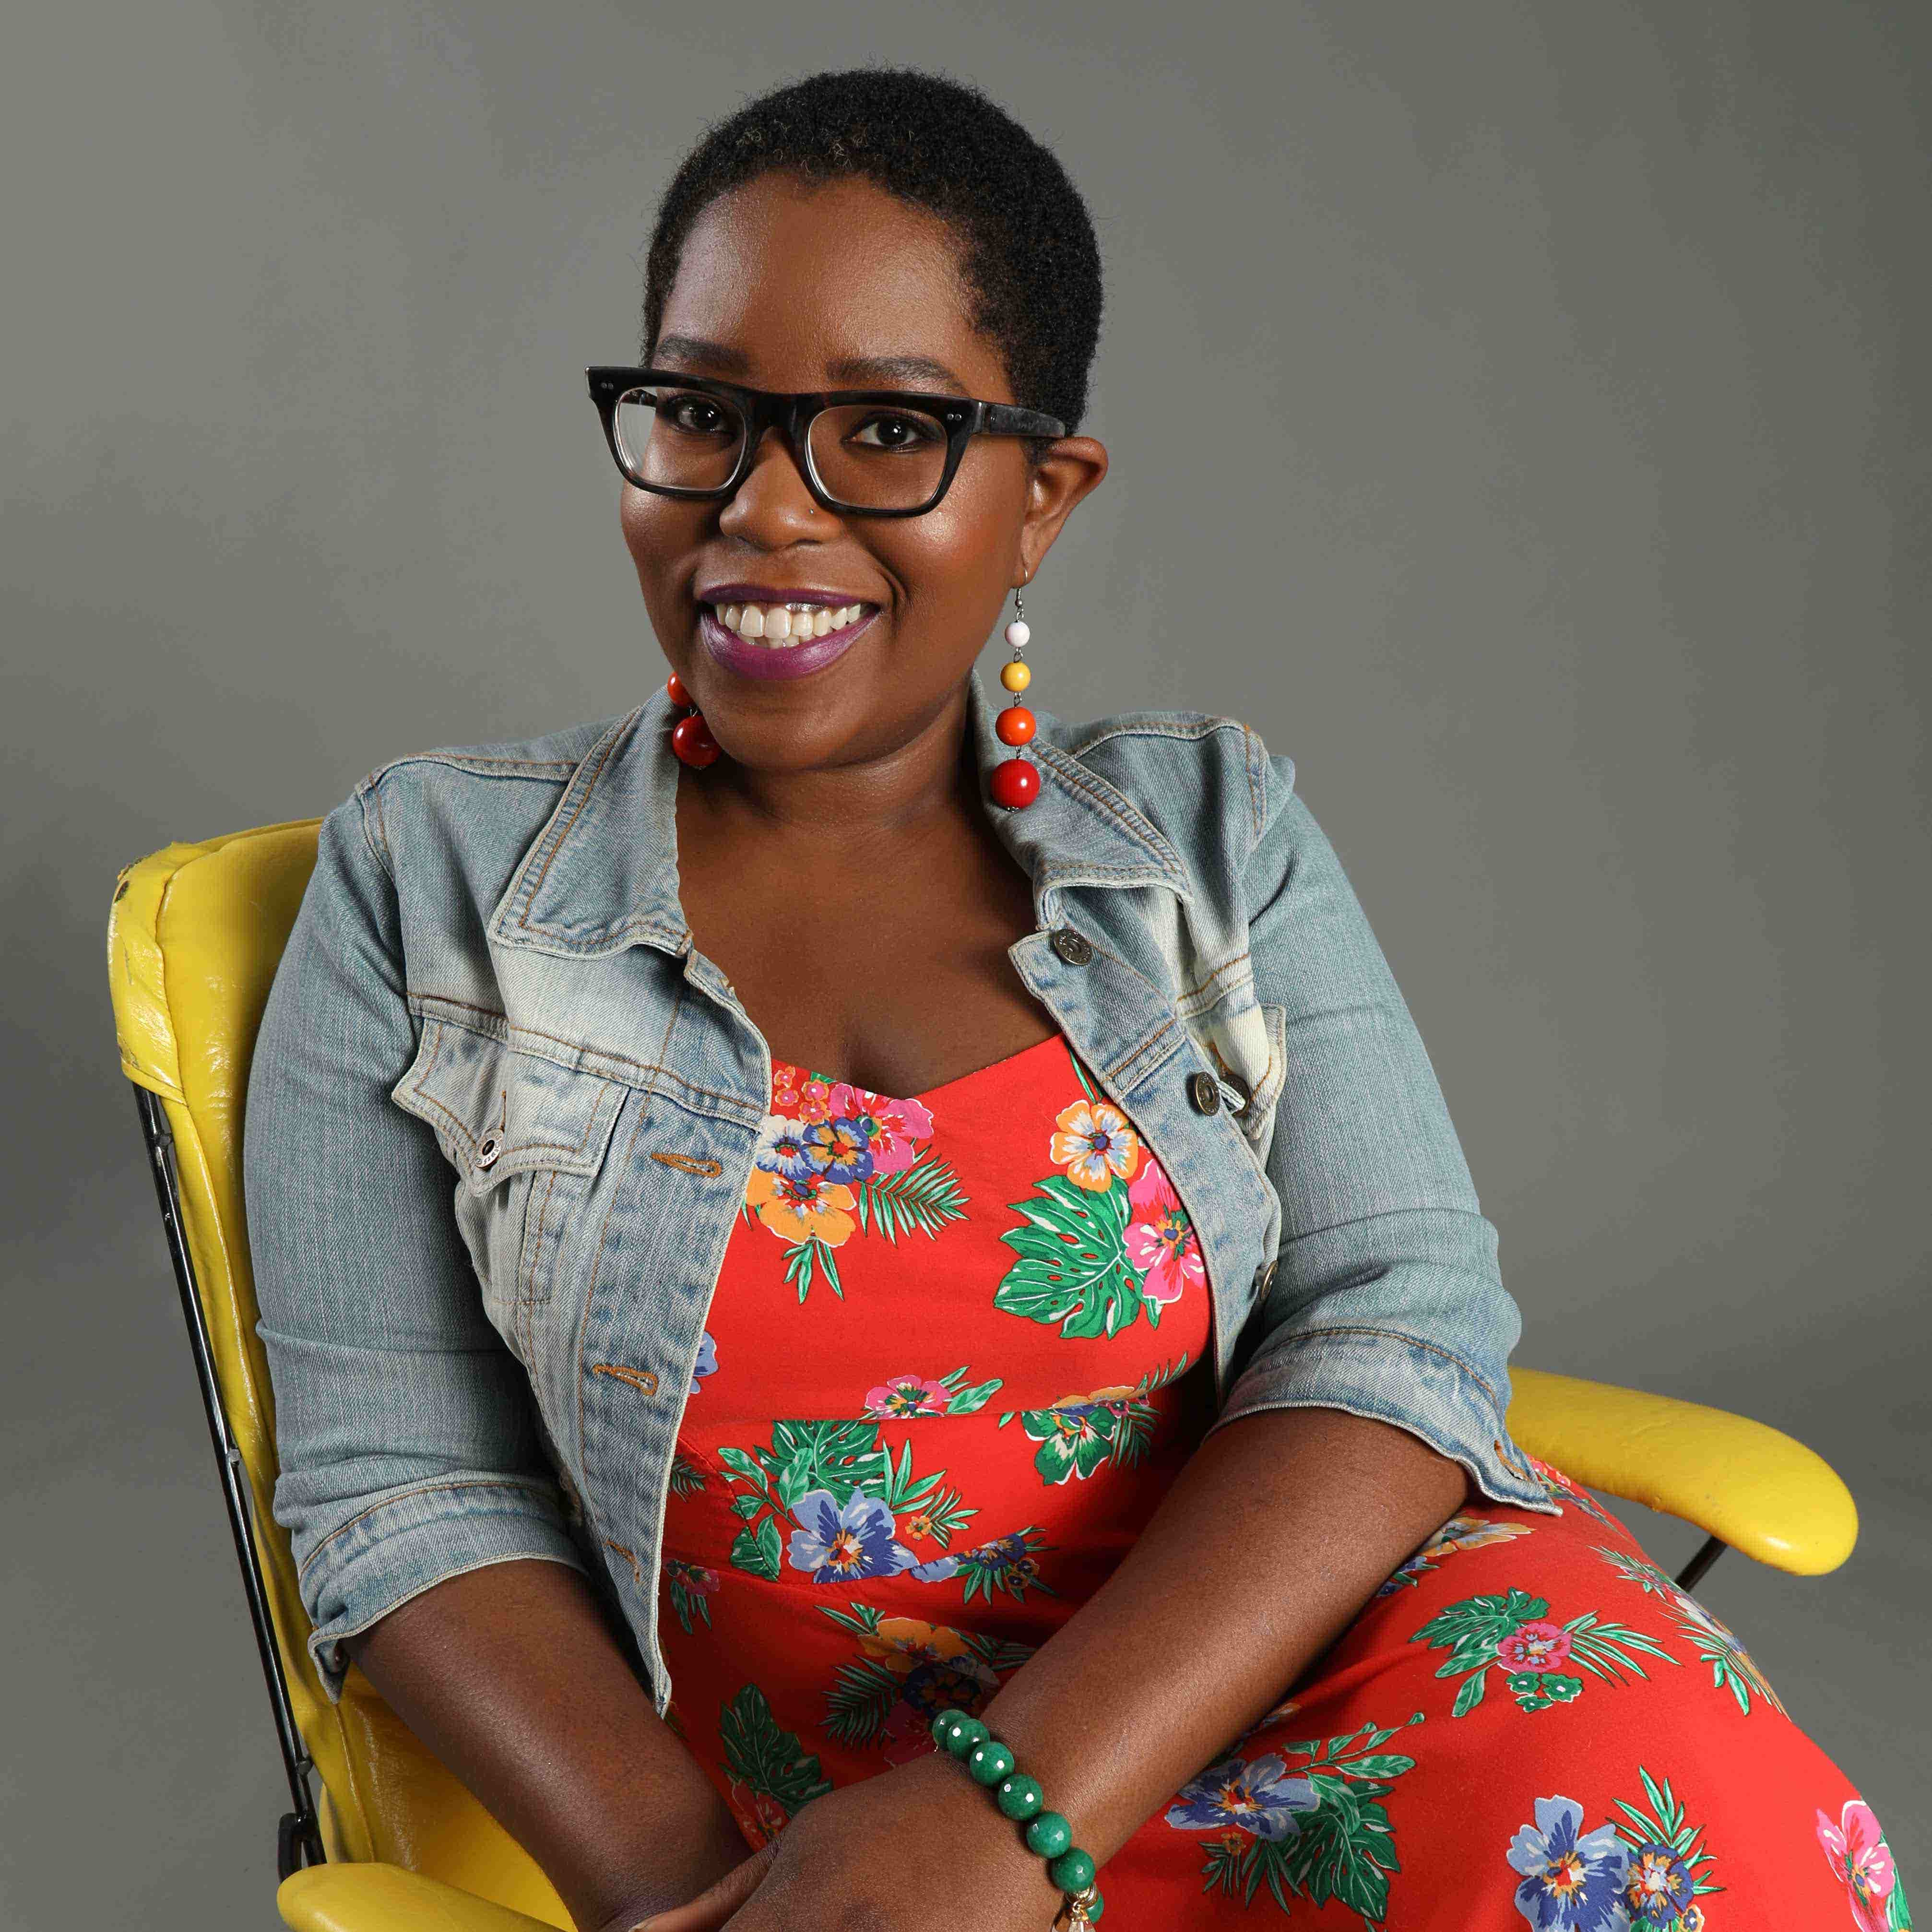 Dominique Wilson sitting in a yellow chair against a gray background. She is wearing dark brown glasses while smiling. She is also wearing an orange, tropics inspired sundress with a light blue jean jacket on top along with a pair of dangling earrings with white, yellow, orange, and yellow balls.